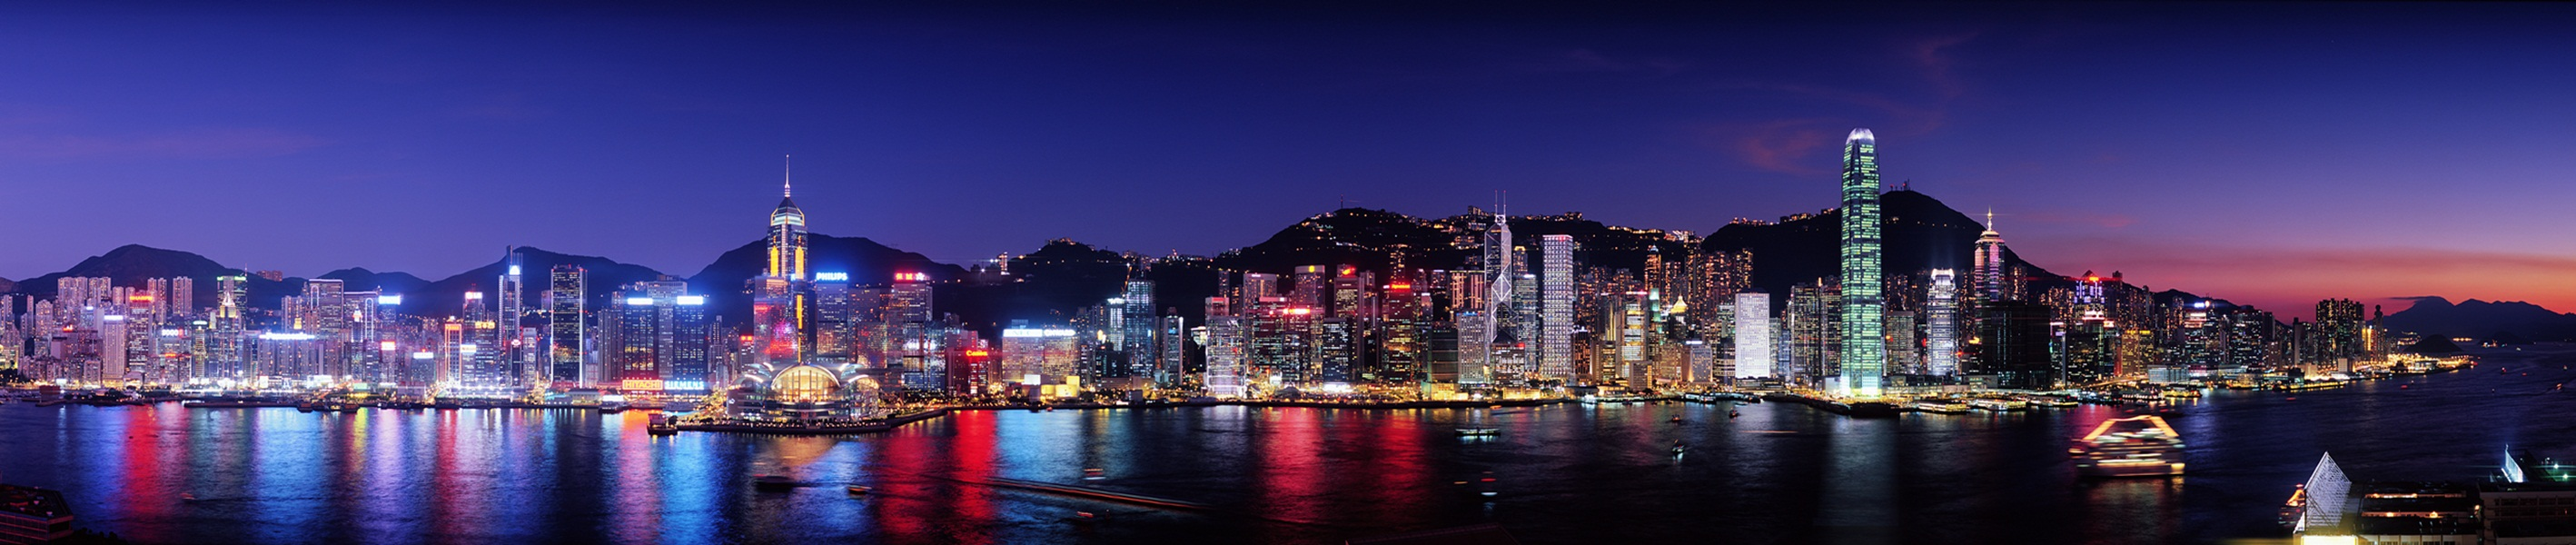 Panorama.2-Hong_Kong_at_night